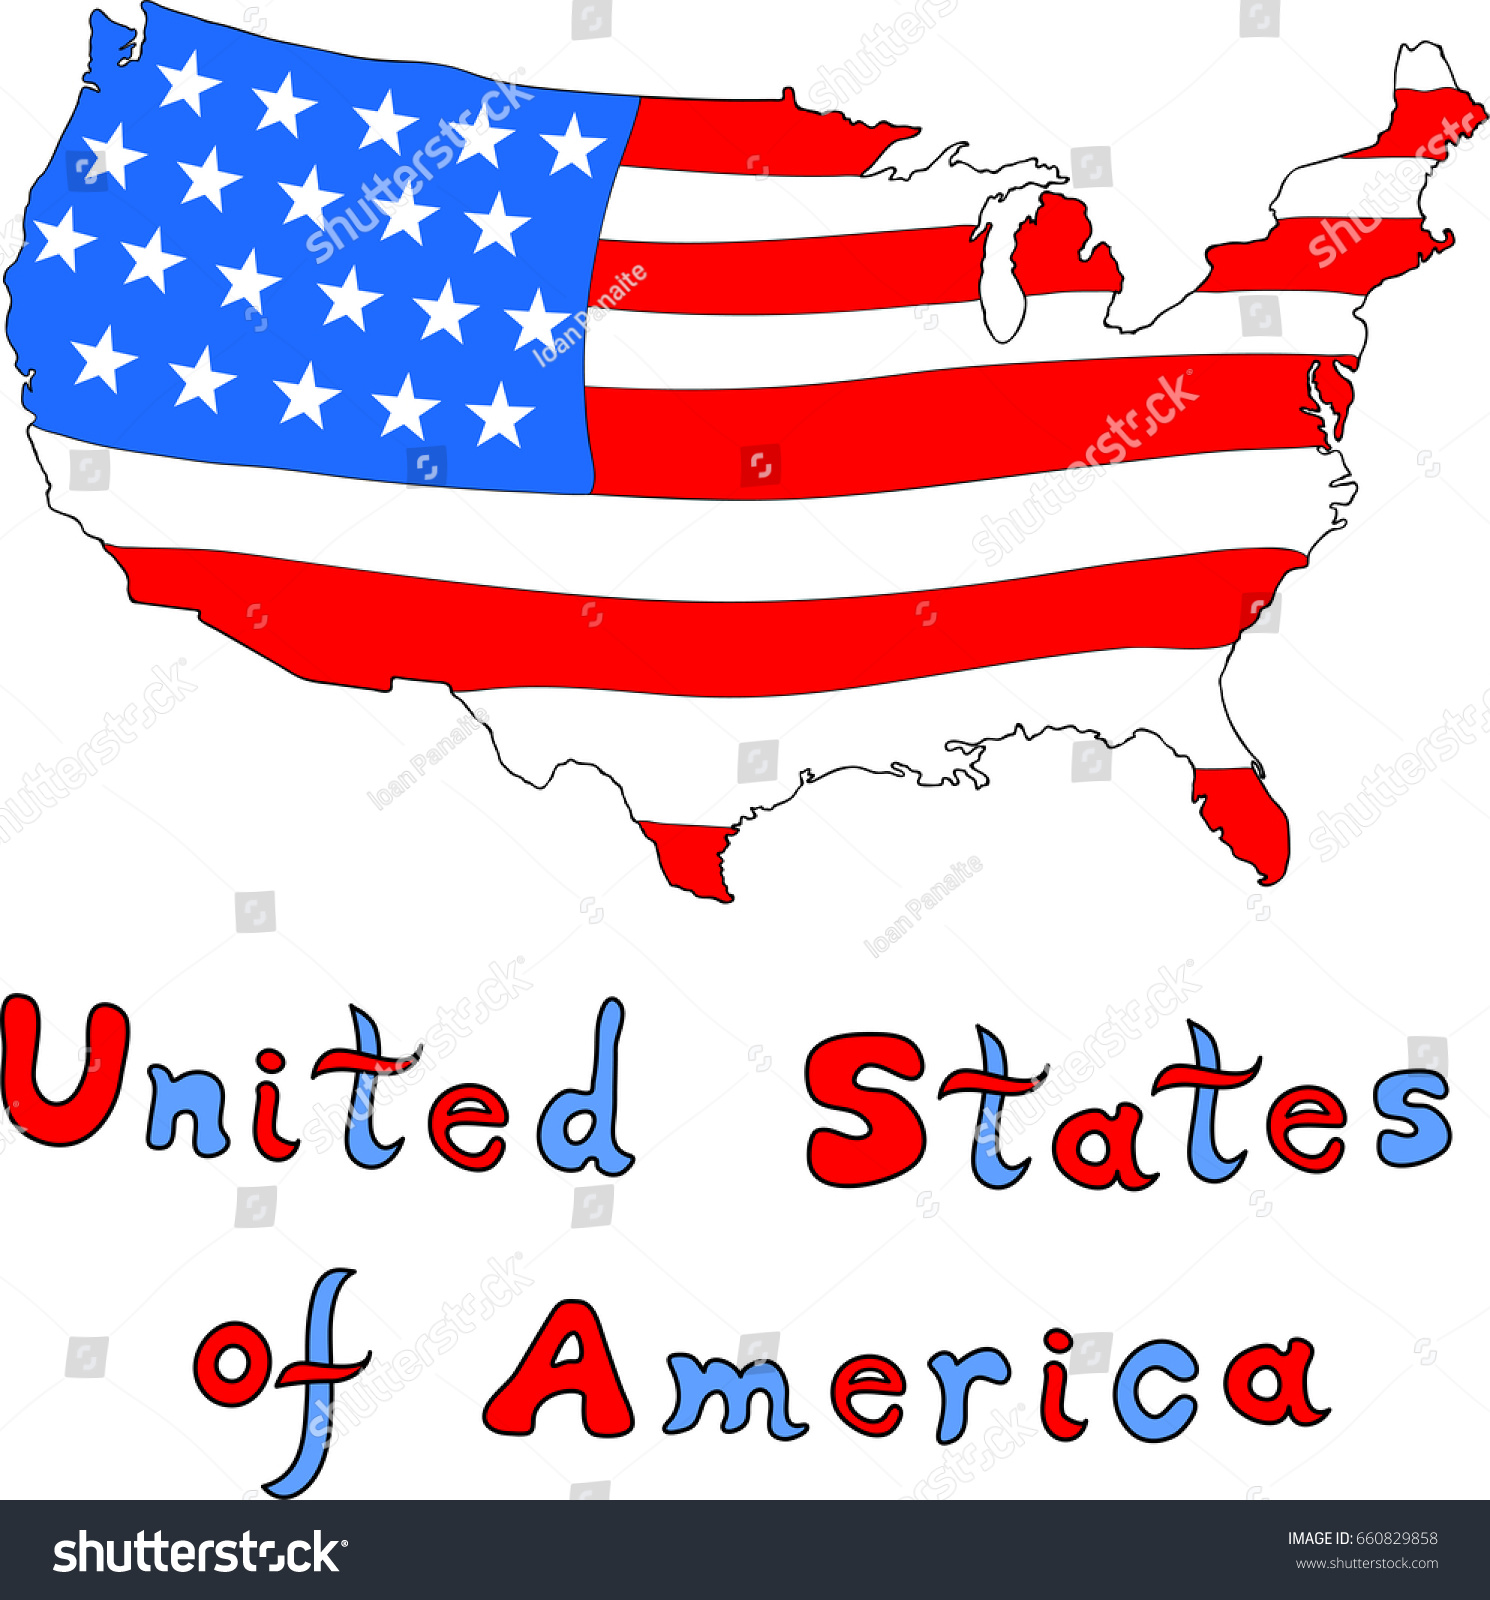 United States America Sketch Map Isolated Stock Vector - Sketch drawing us with states map